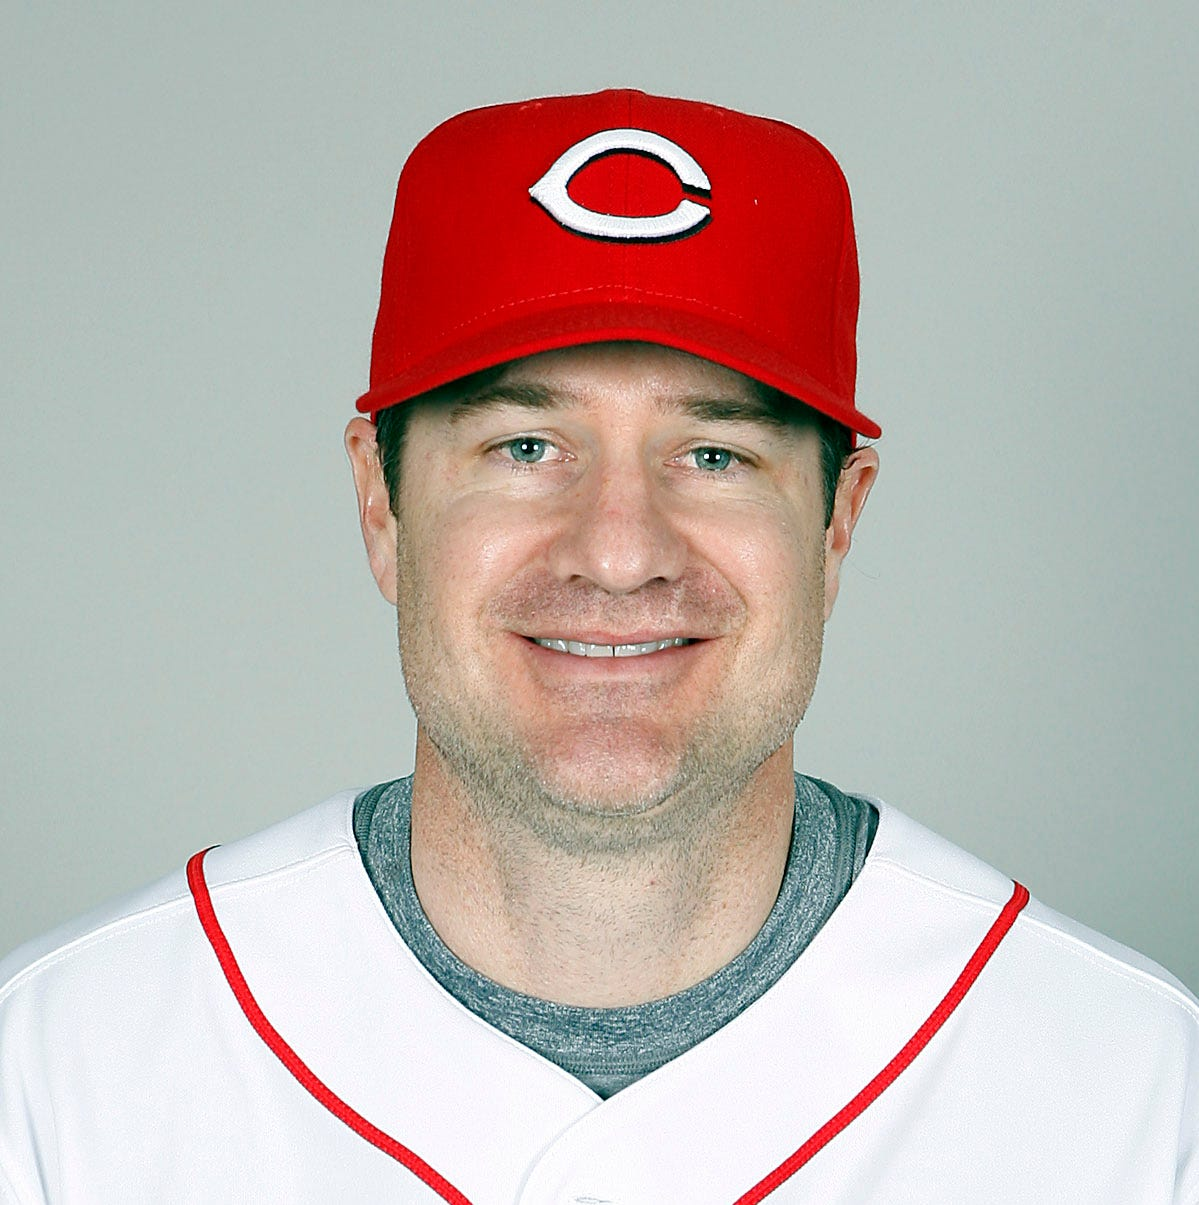 Reactions: Cincinnati Reds pick David Bell as their next manager